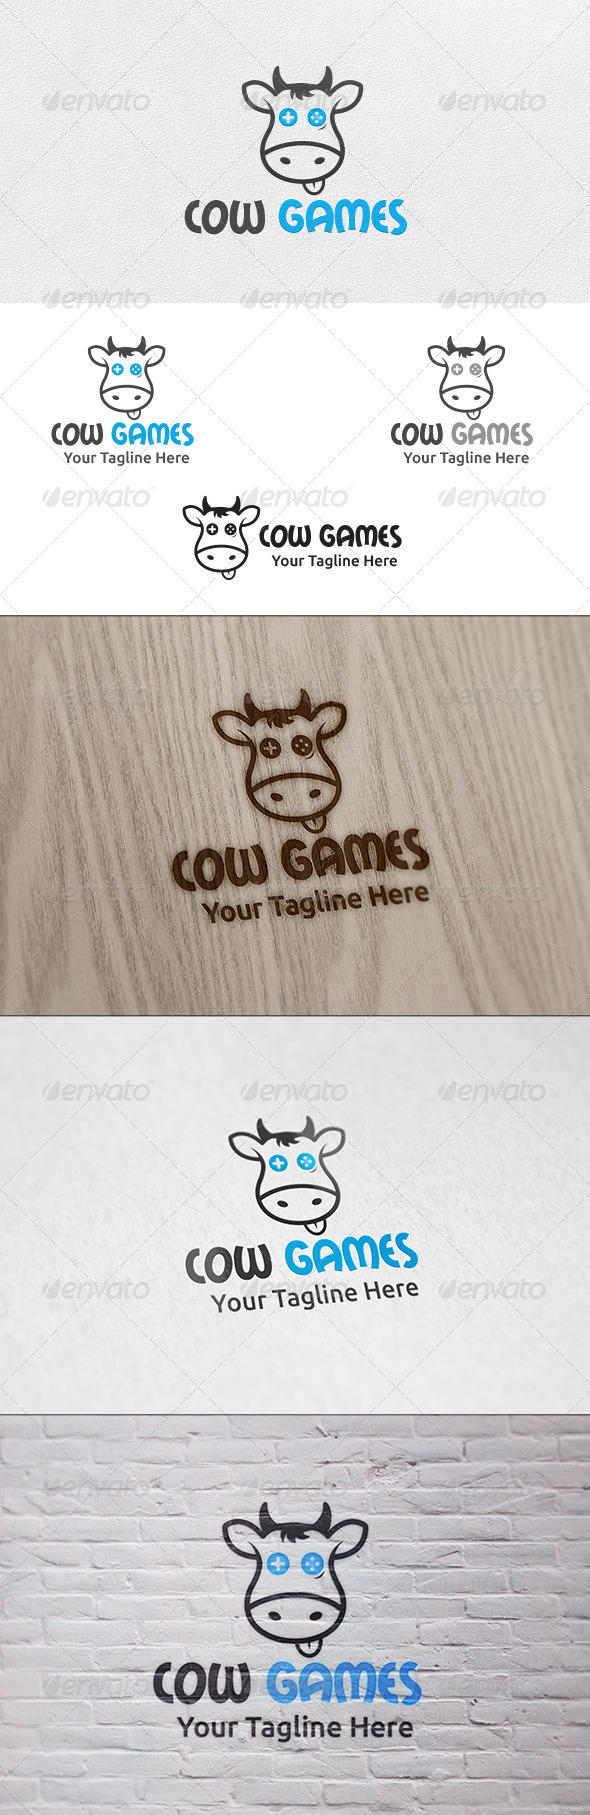 GraphicRiver Cow Games Logo Template 6459090